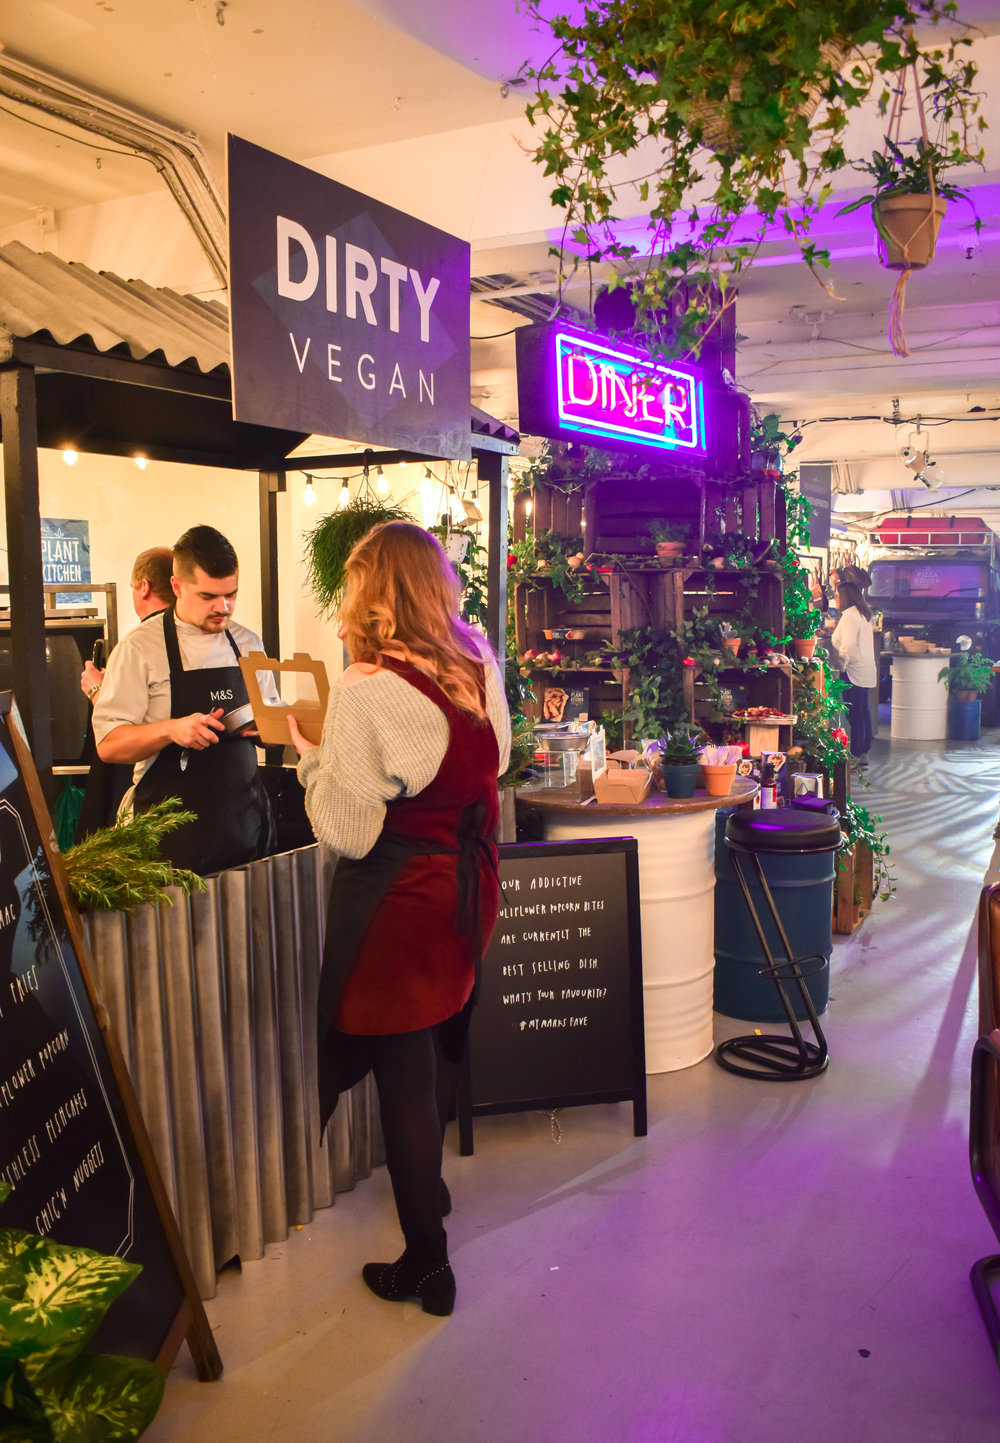 The Dirty Vegan food stand at the event of a busy event